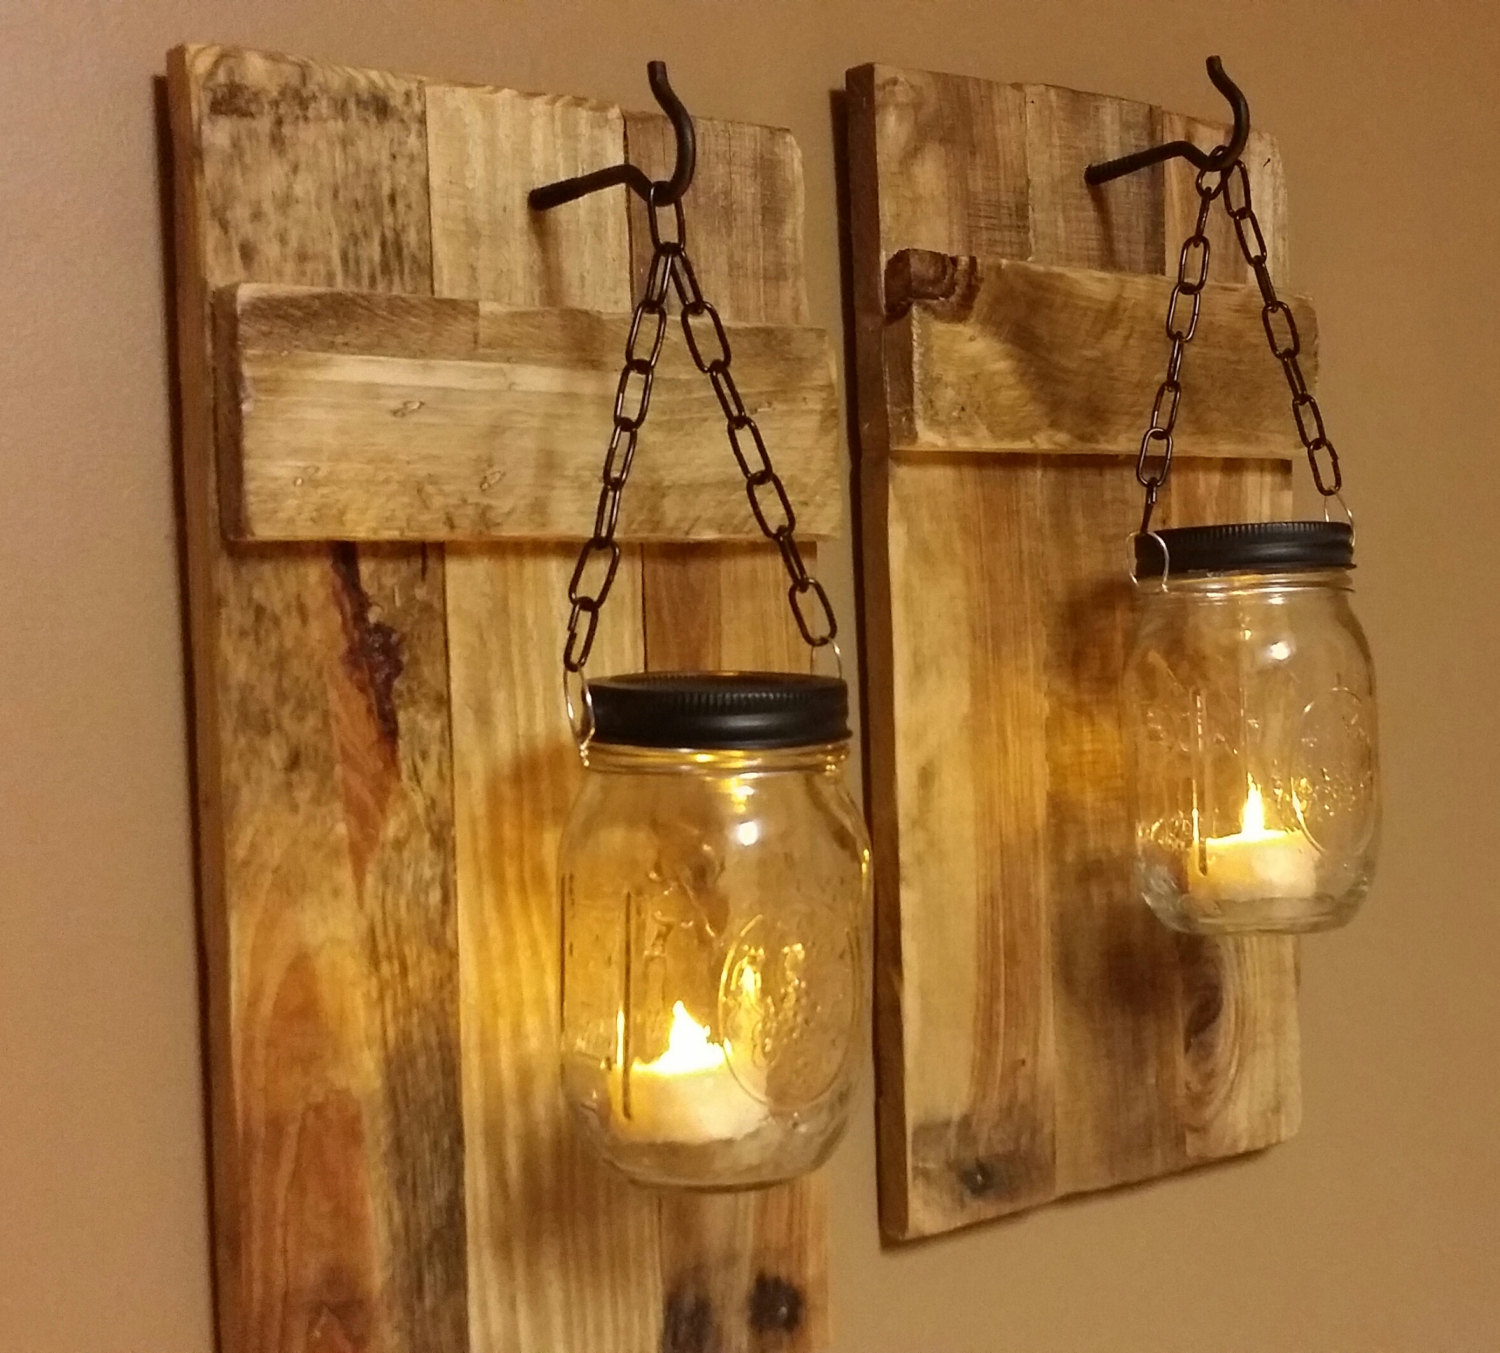 Diy mason jar sconce making tutorial mason jar crafts mason jar outdoor sconce arubaitofo Gallery